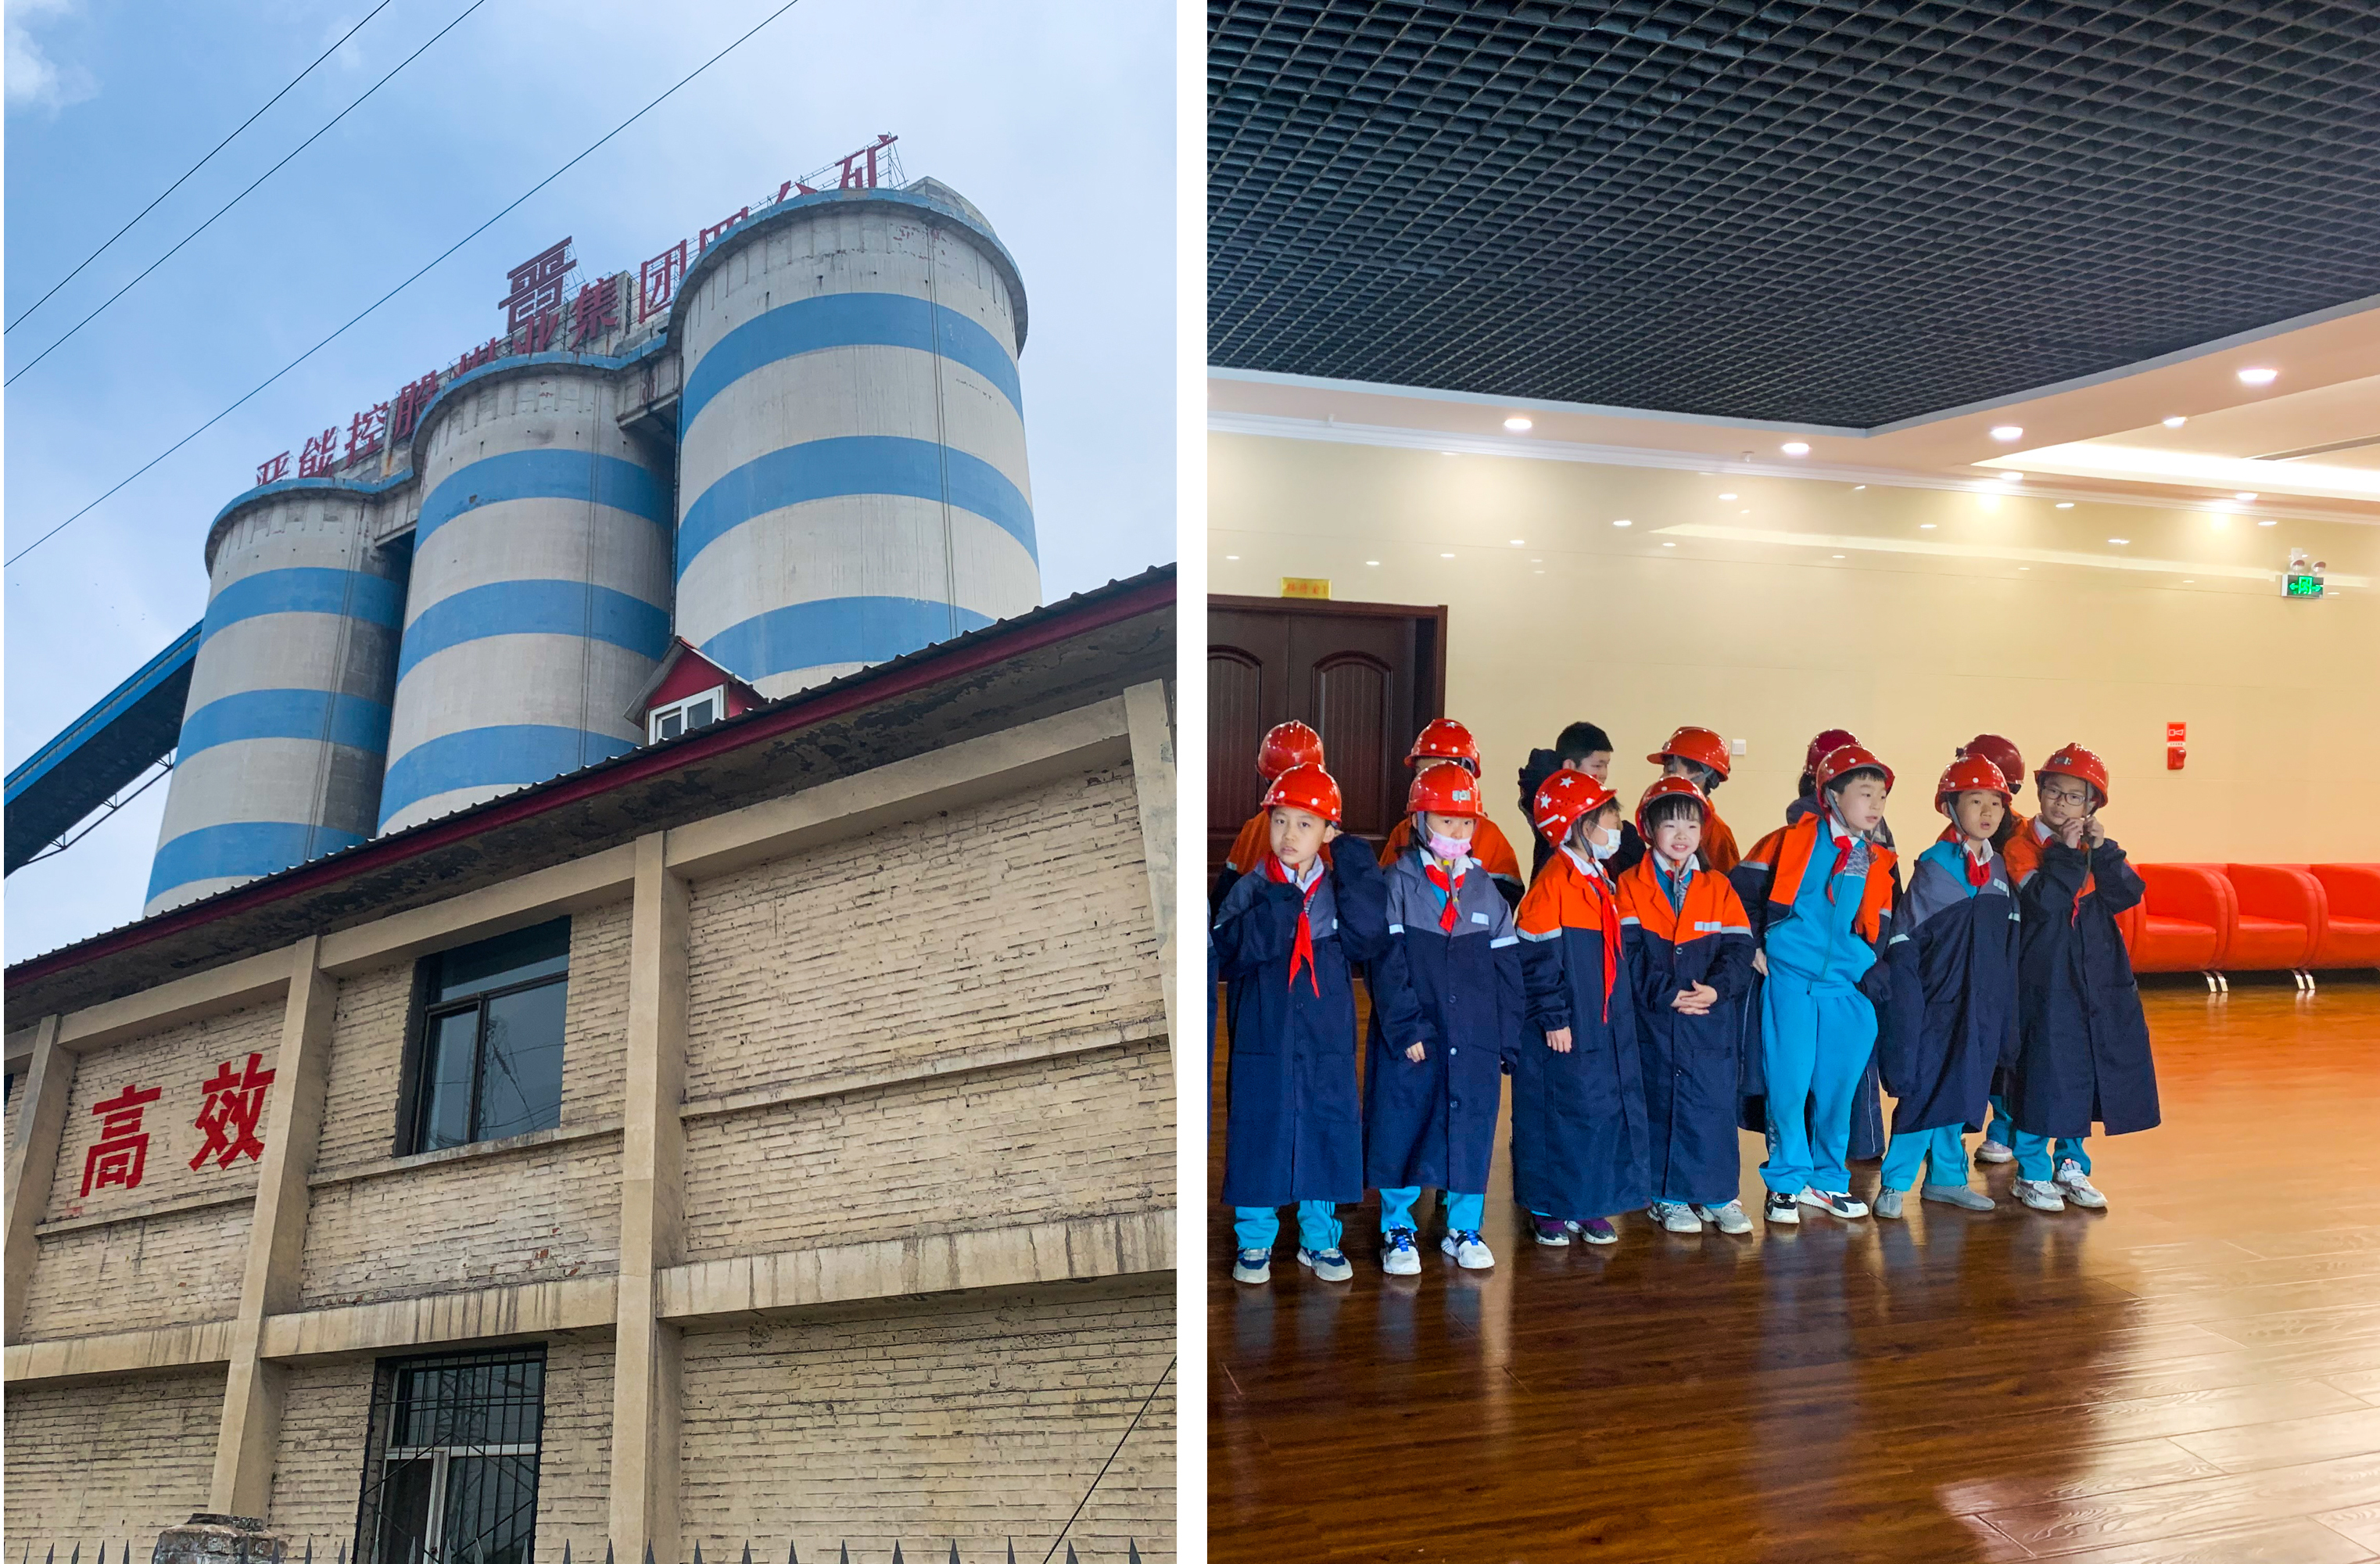 Two images are combined side by side. The left image depicts a brick building with smoke stacks or cooling towards rising above. The right image shows children dressed in hard hats clustered together in group.